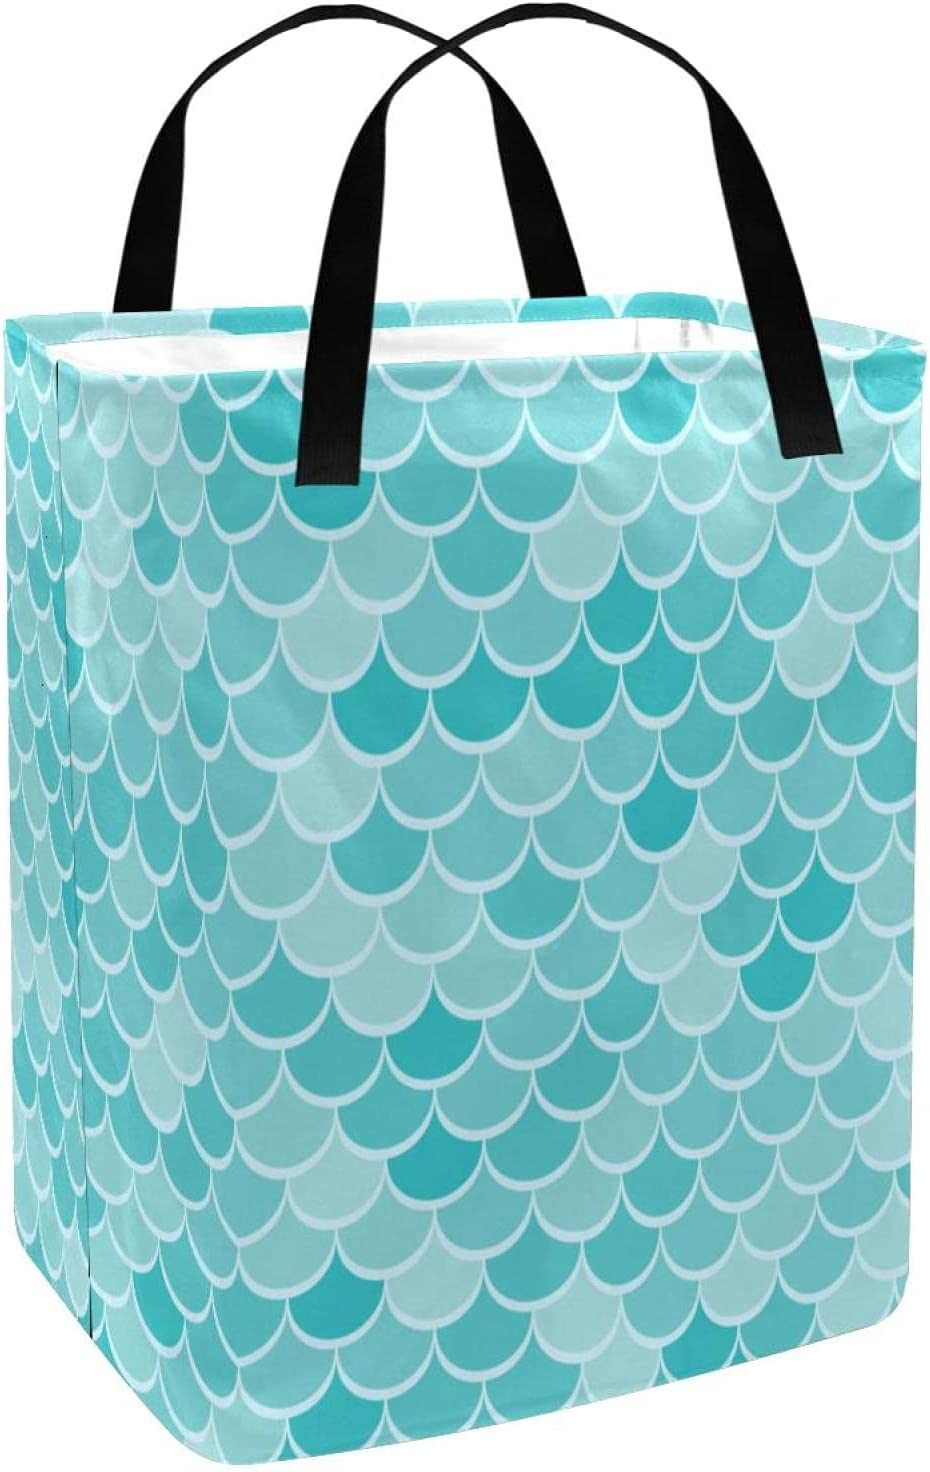 Storage Basket Large Tulsa Mall Laundry Hamper Sto with Excellent Collapsible Handles